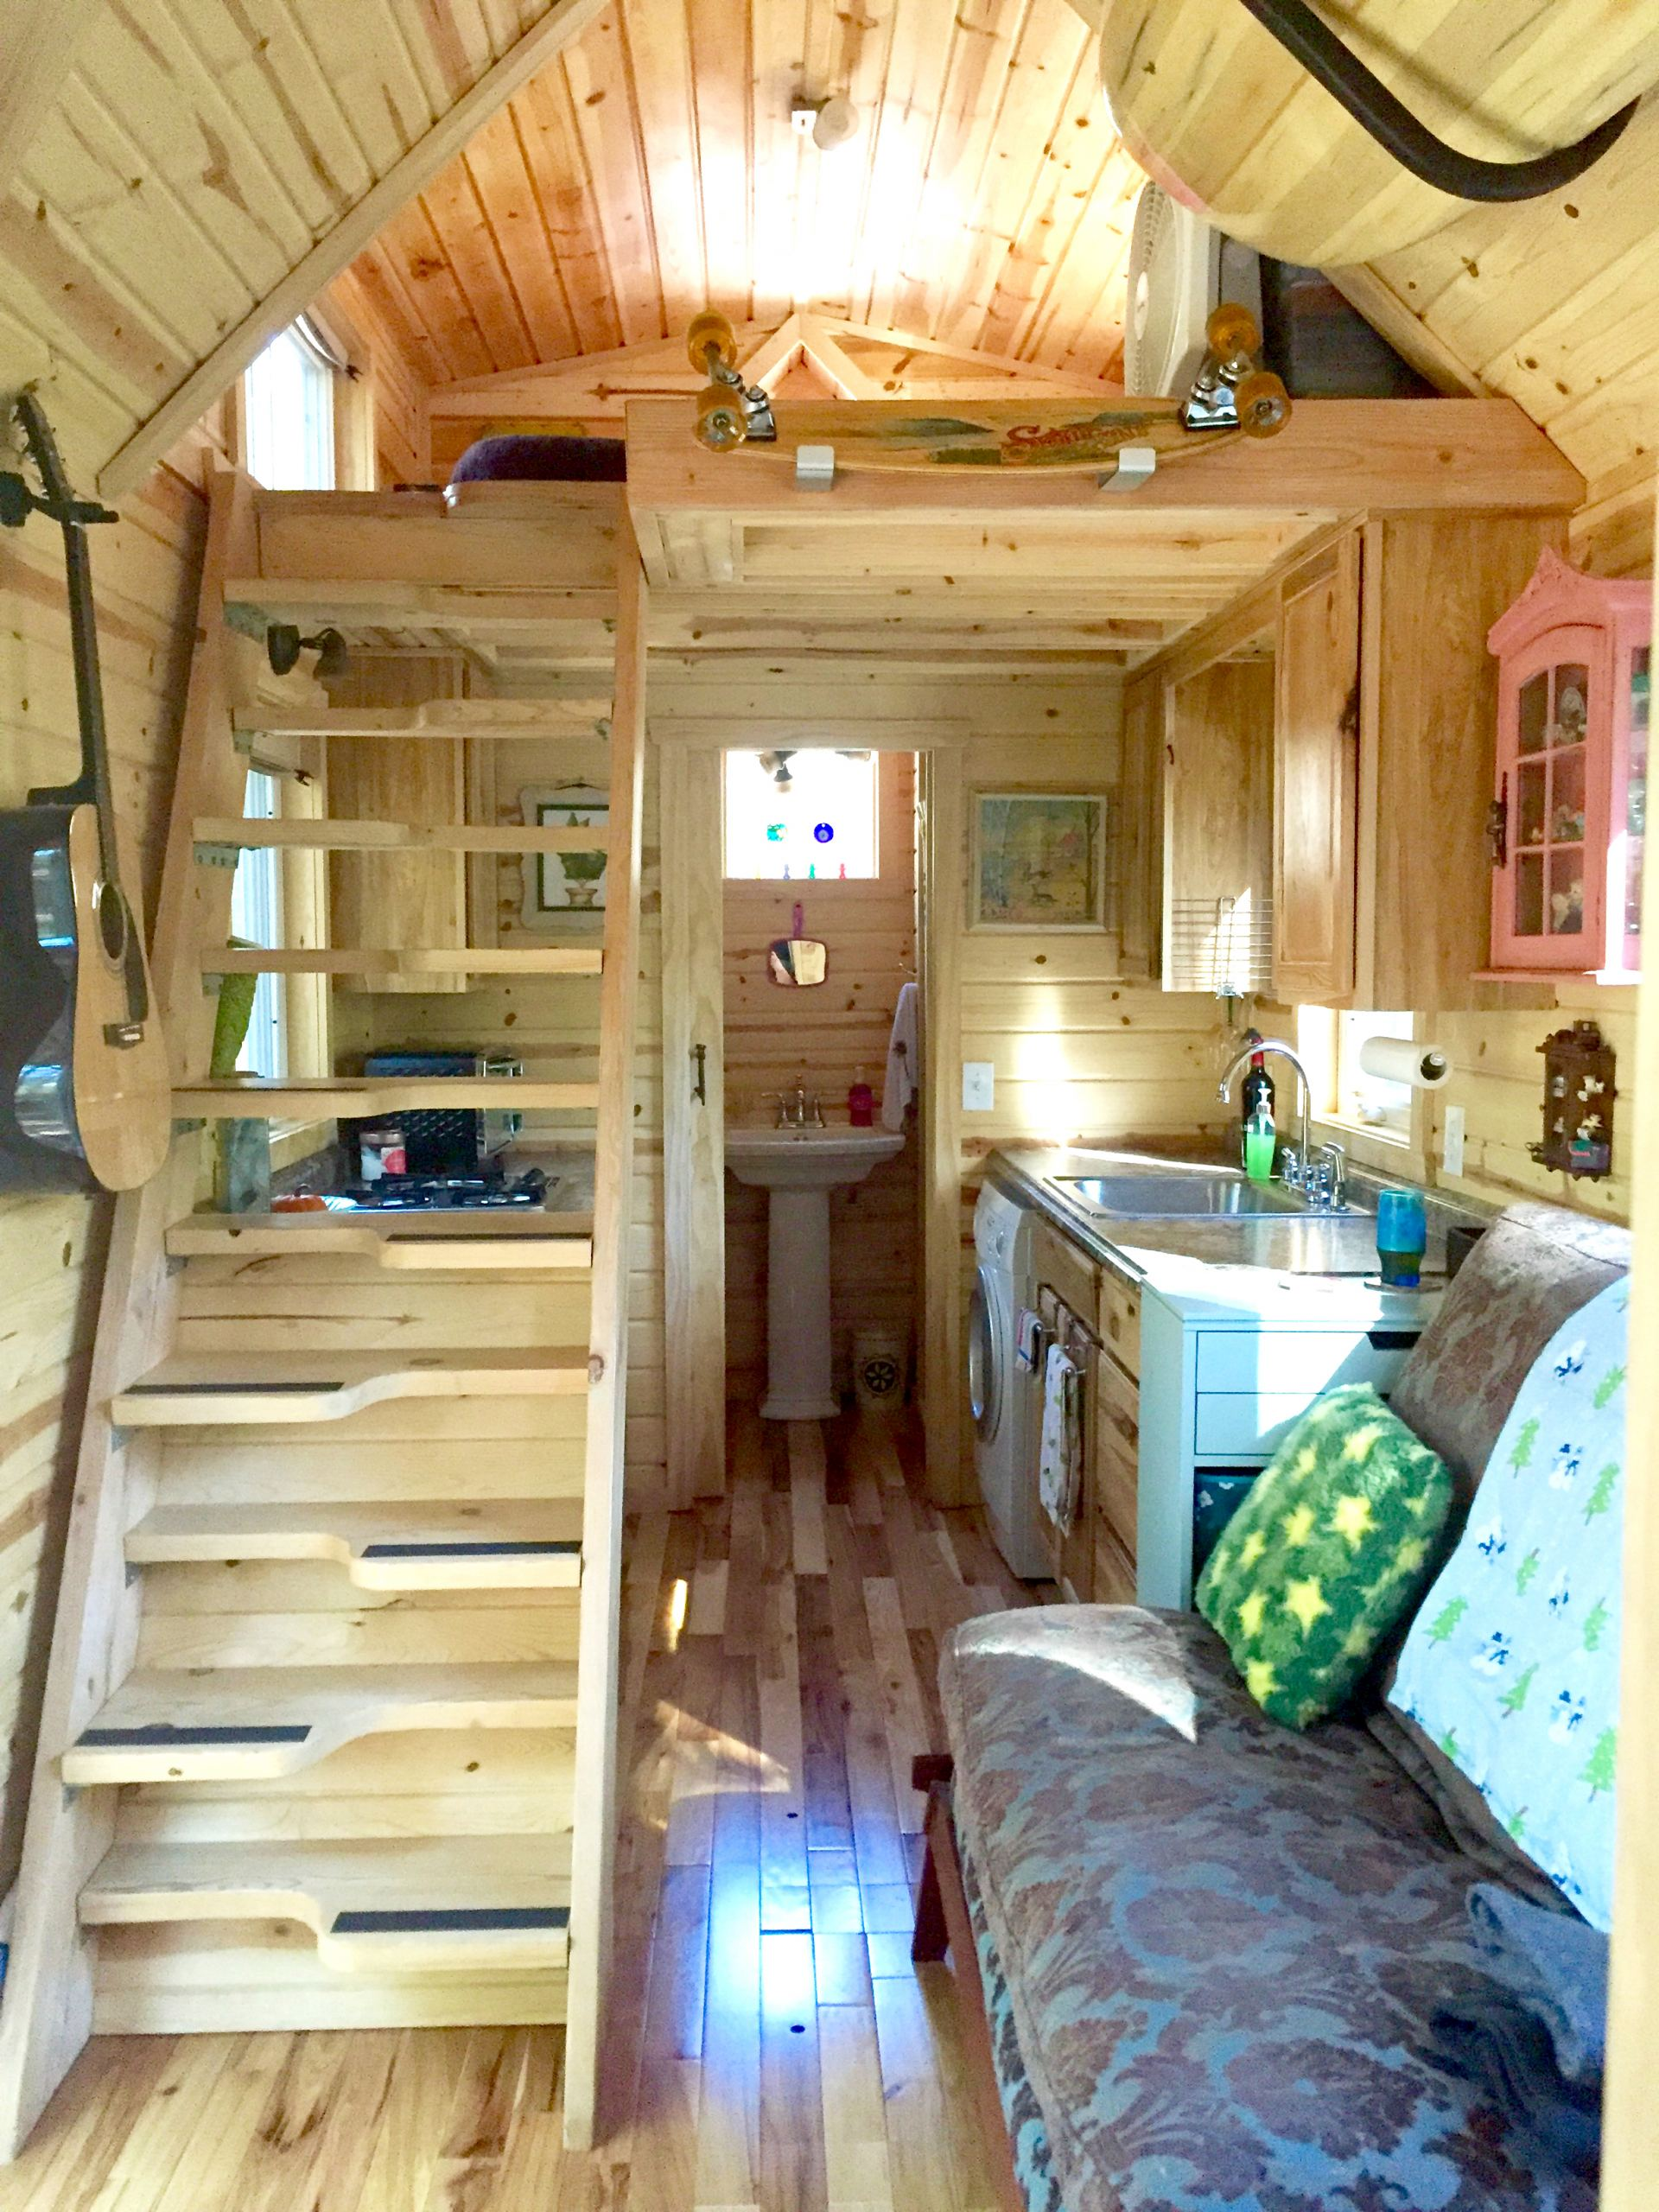 Nicki 39 s colorful victorian tiny house after one year for House interior designs for small houses